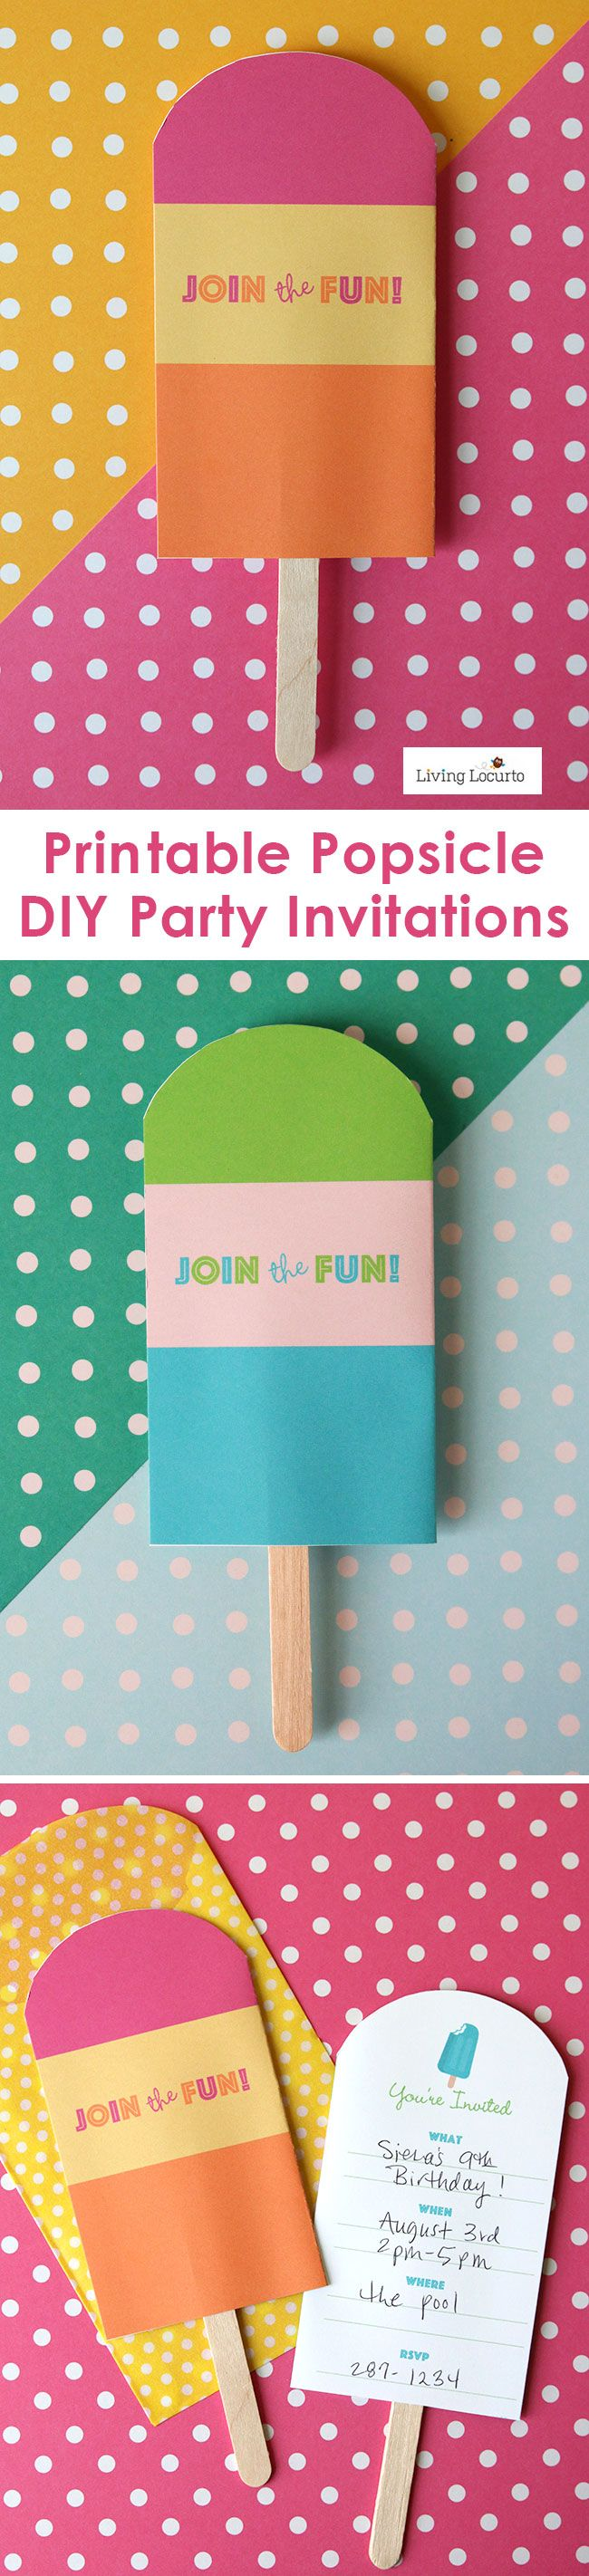 Chill out with these Cute Free Printable Popsicle Party Invitations and Decorations. Choose from several color options. Fun summer party ideas for any age!